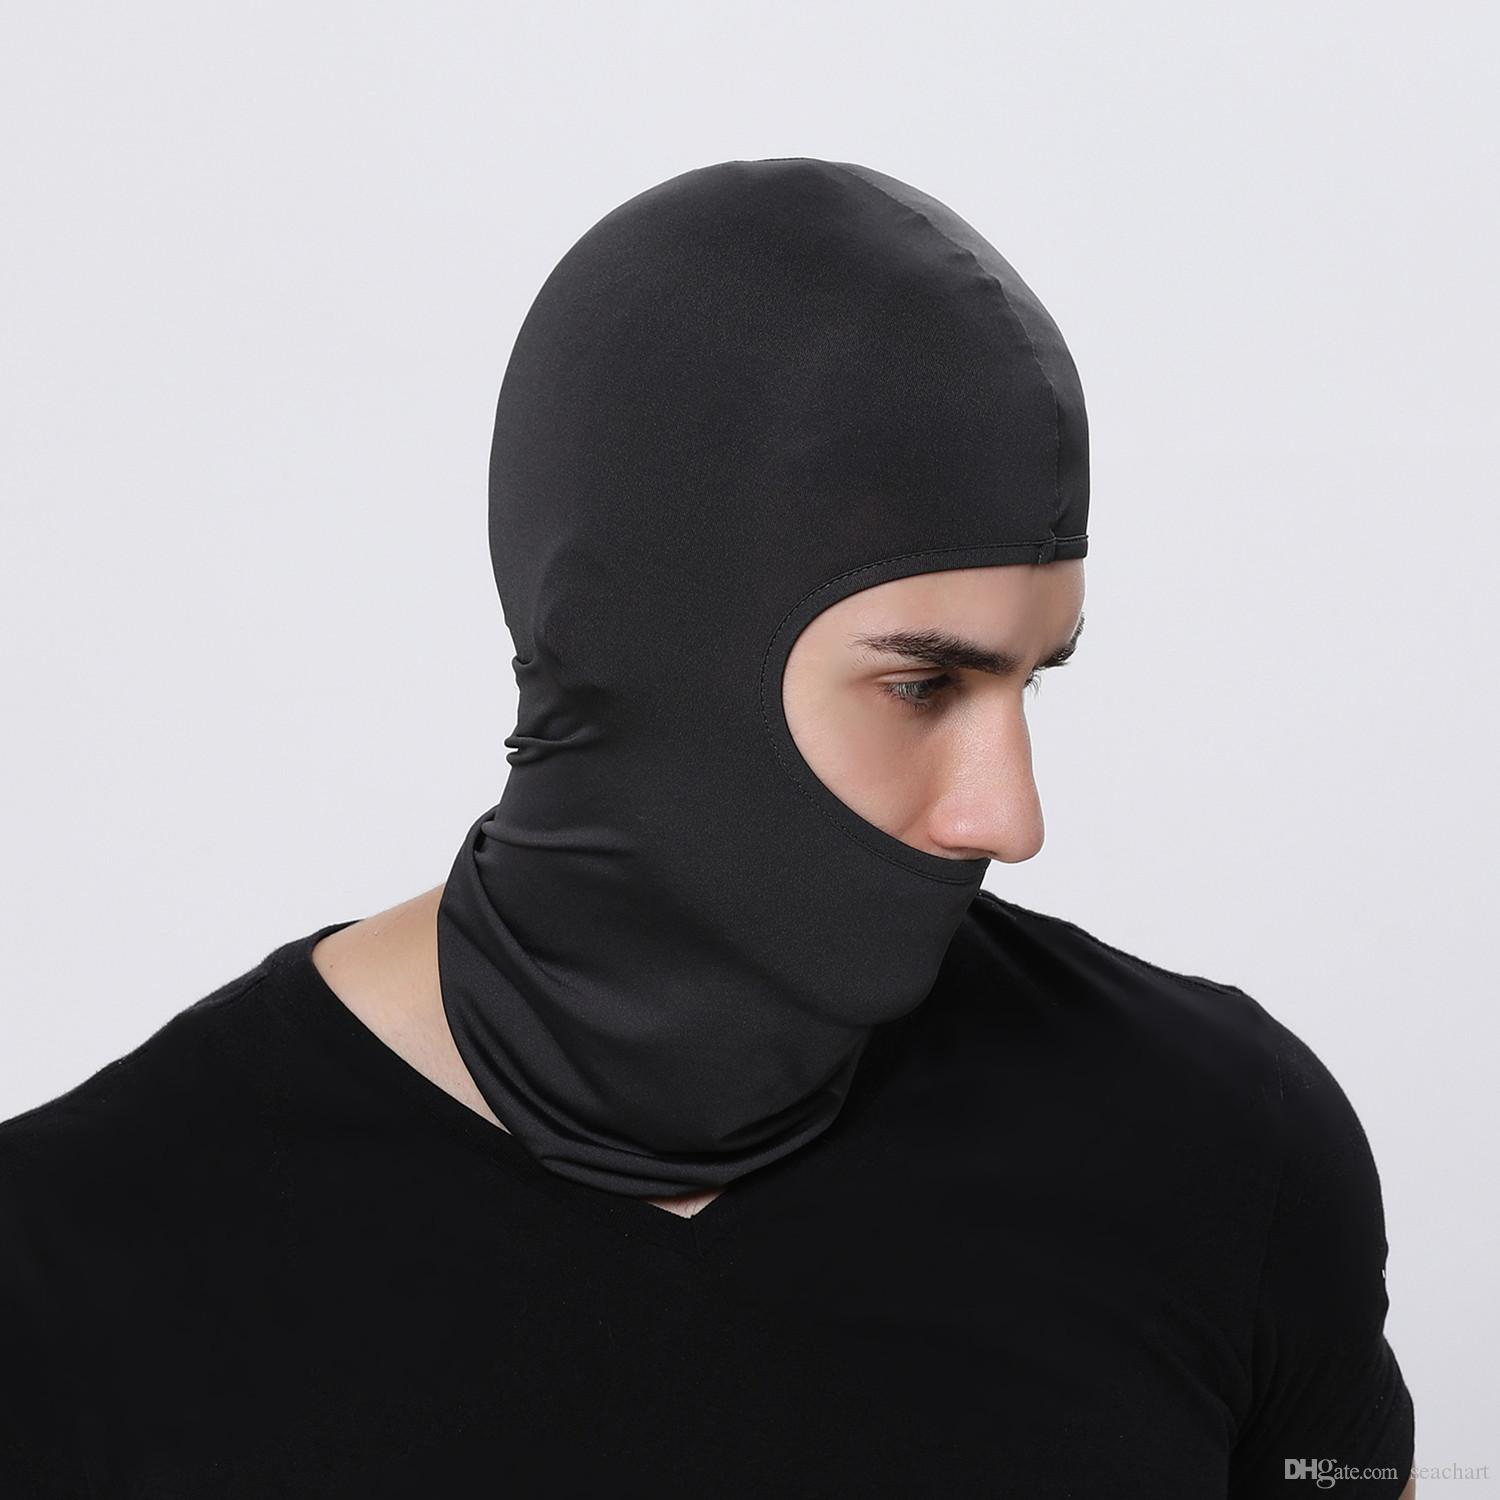 Hot Sele Motorcycle Face Mask Cycling Ski Neck Protecting Outdoor Balaclava Full Face Mask Ultra Thin Breathable Windproof Mask Men's Masks